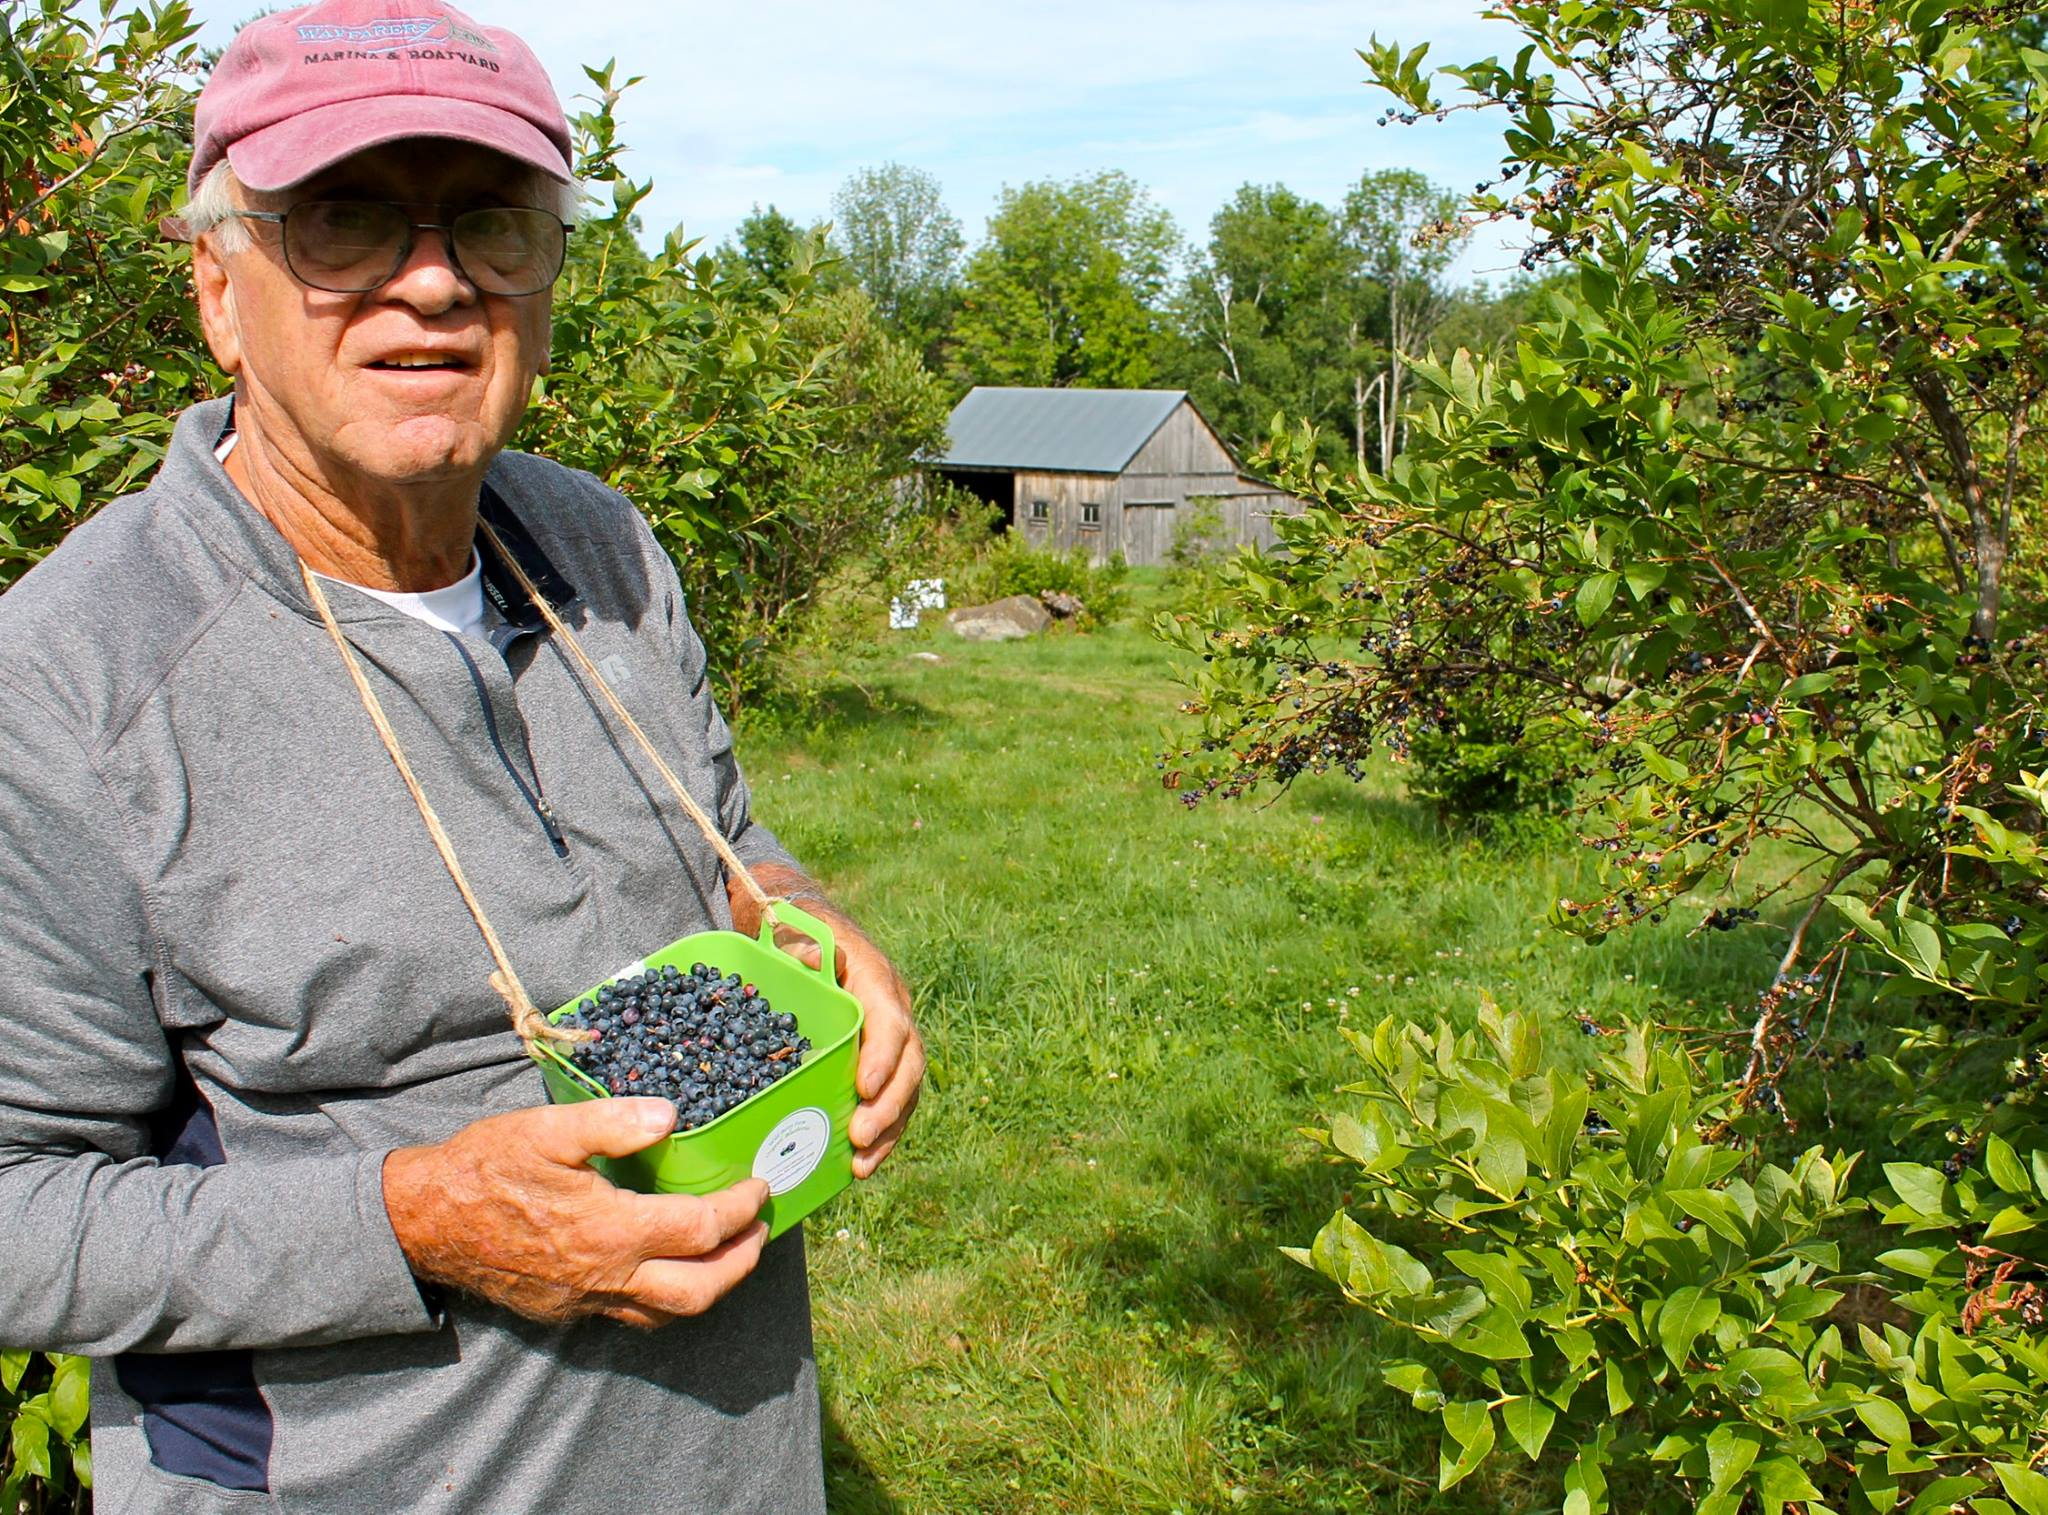 Blueberry picking is a fun event for the entire family.